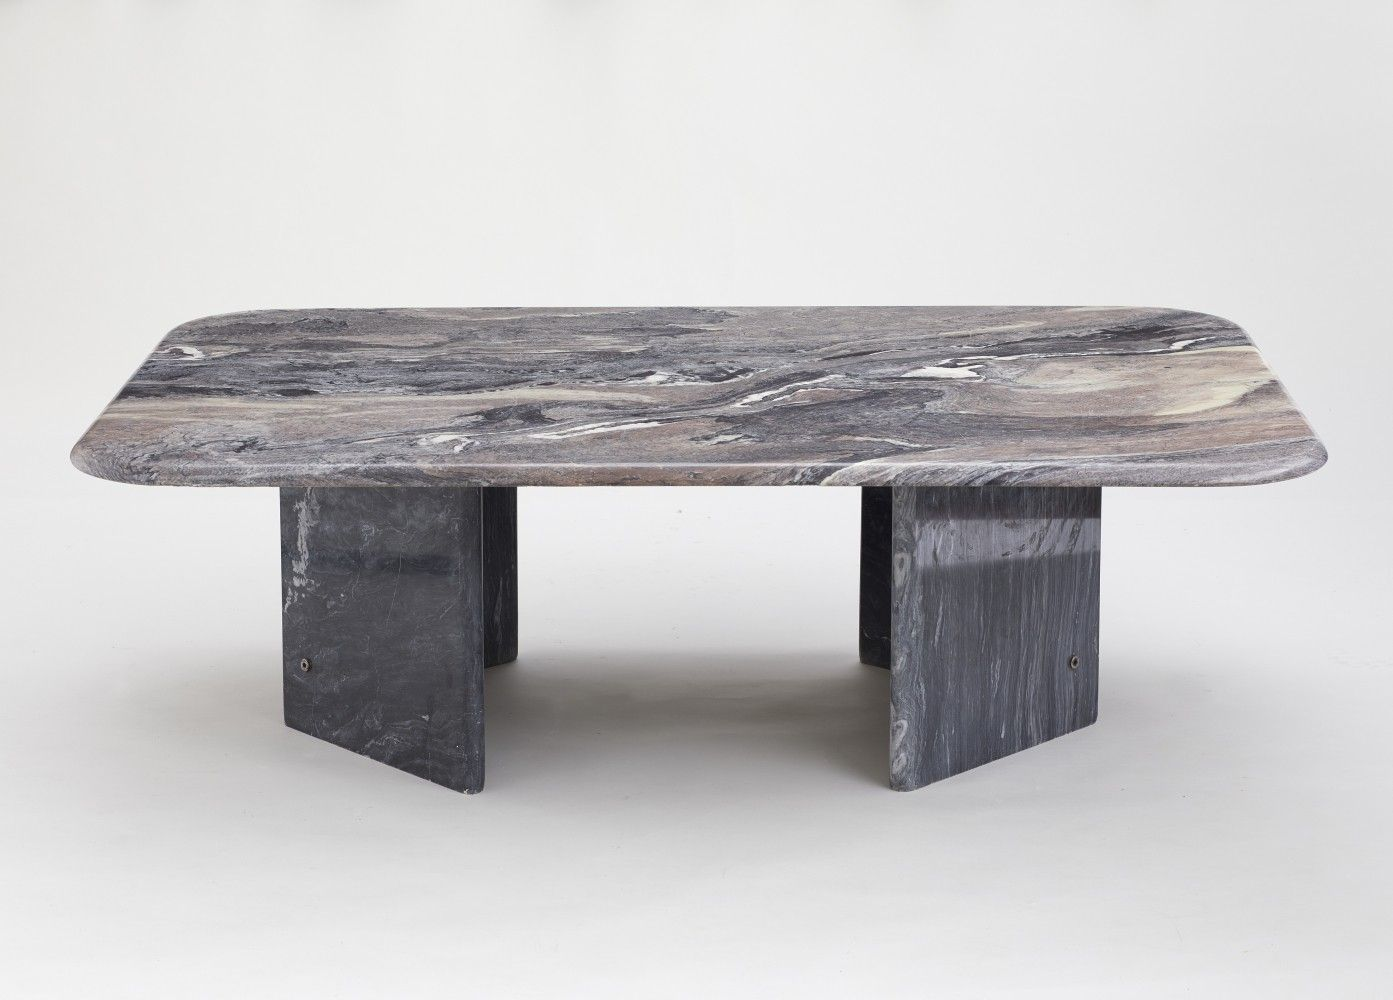 For Sale Vintage 1970 S Black Brown Marble Coffee Table Marble Coffee Table Coffee Table Table